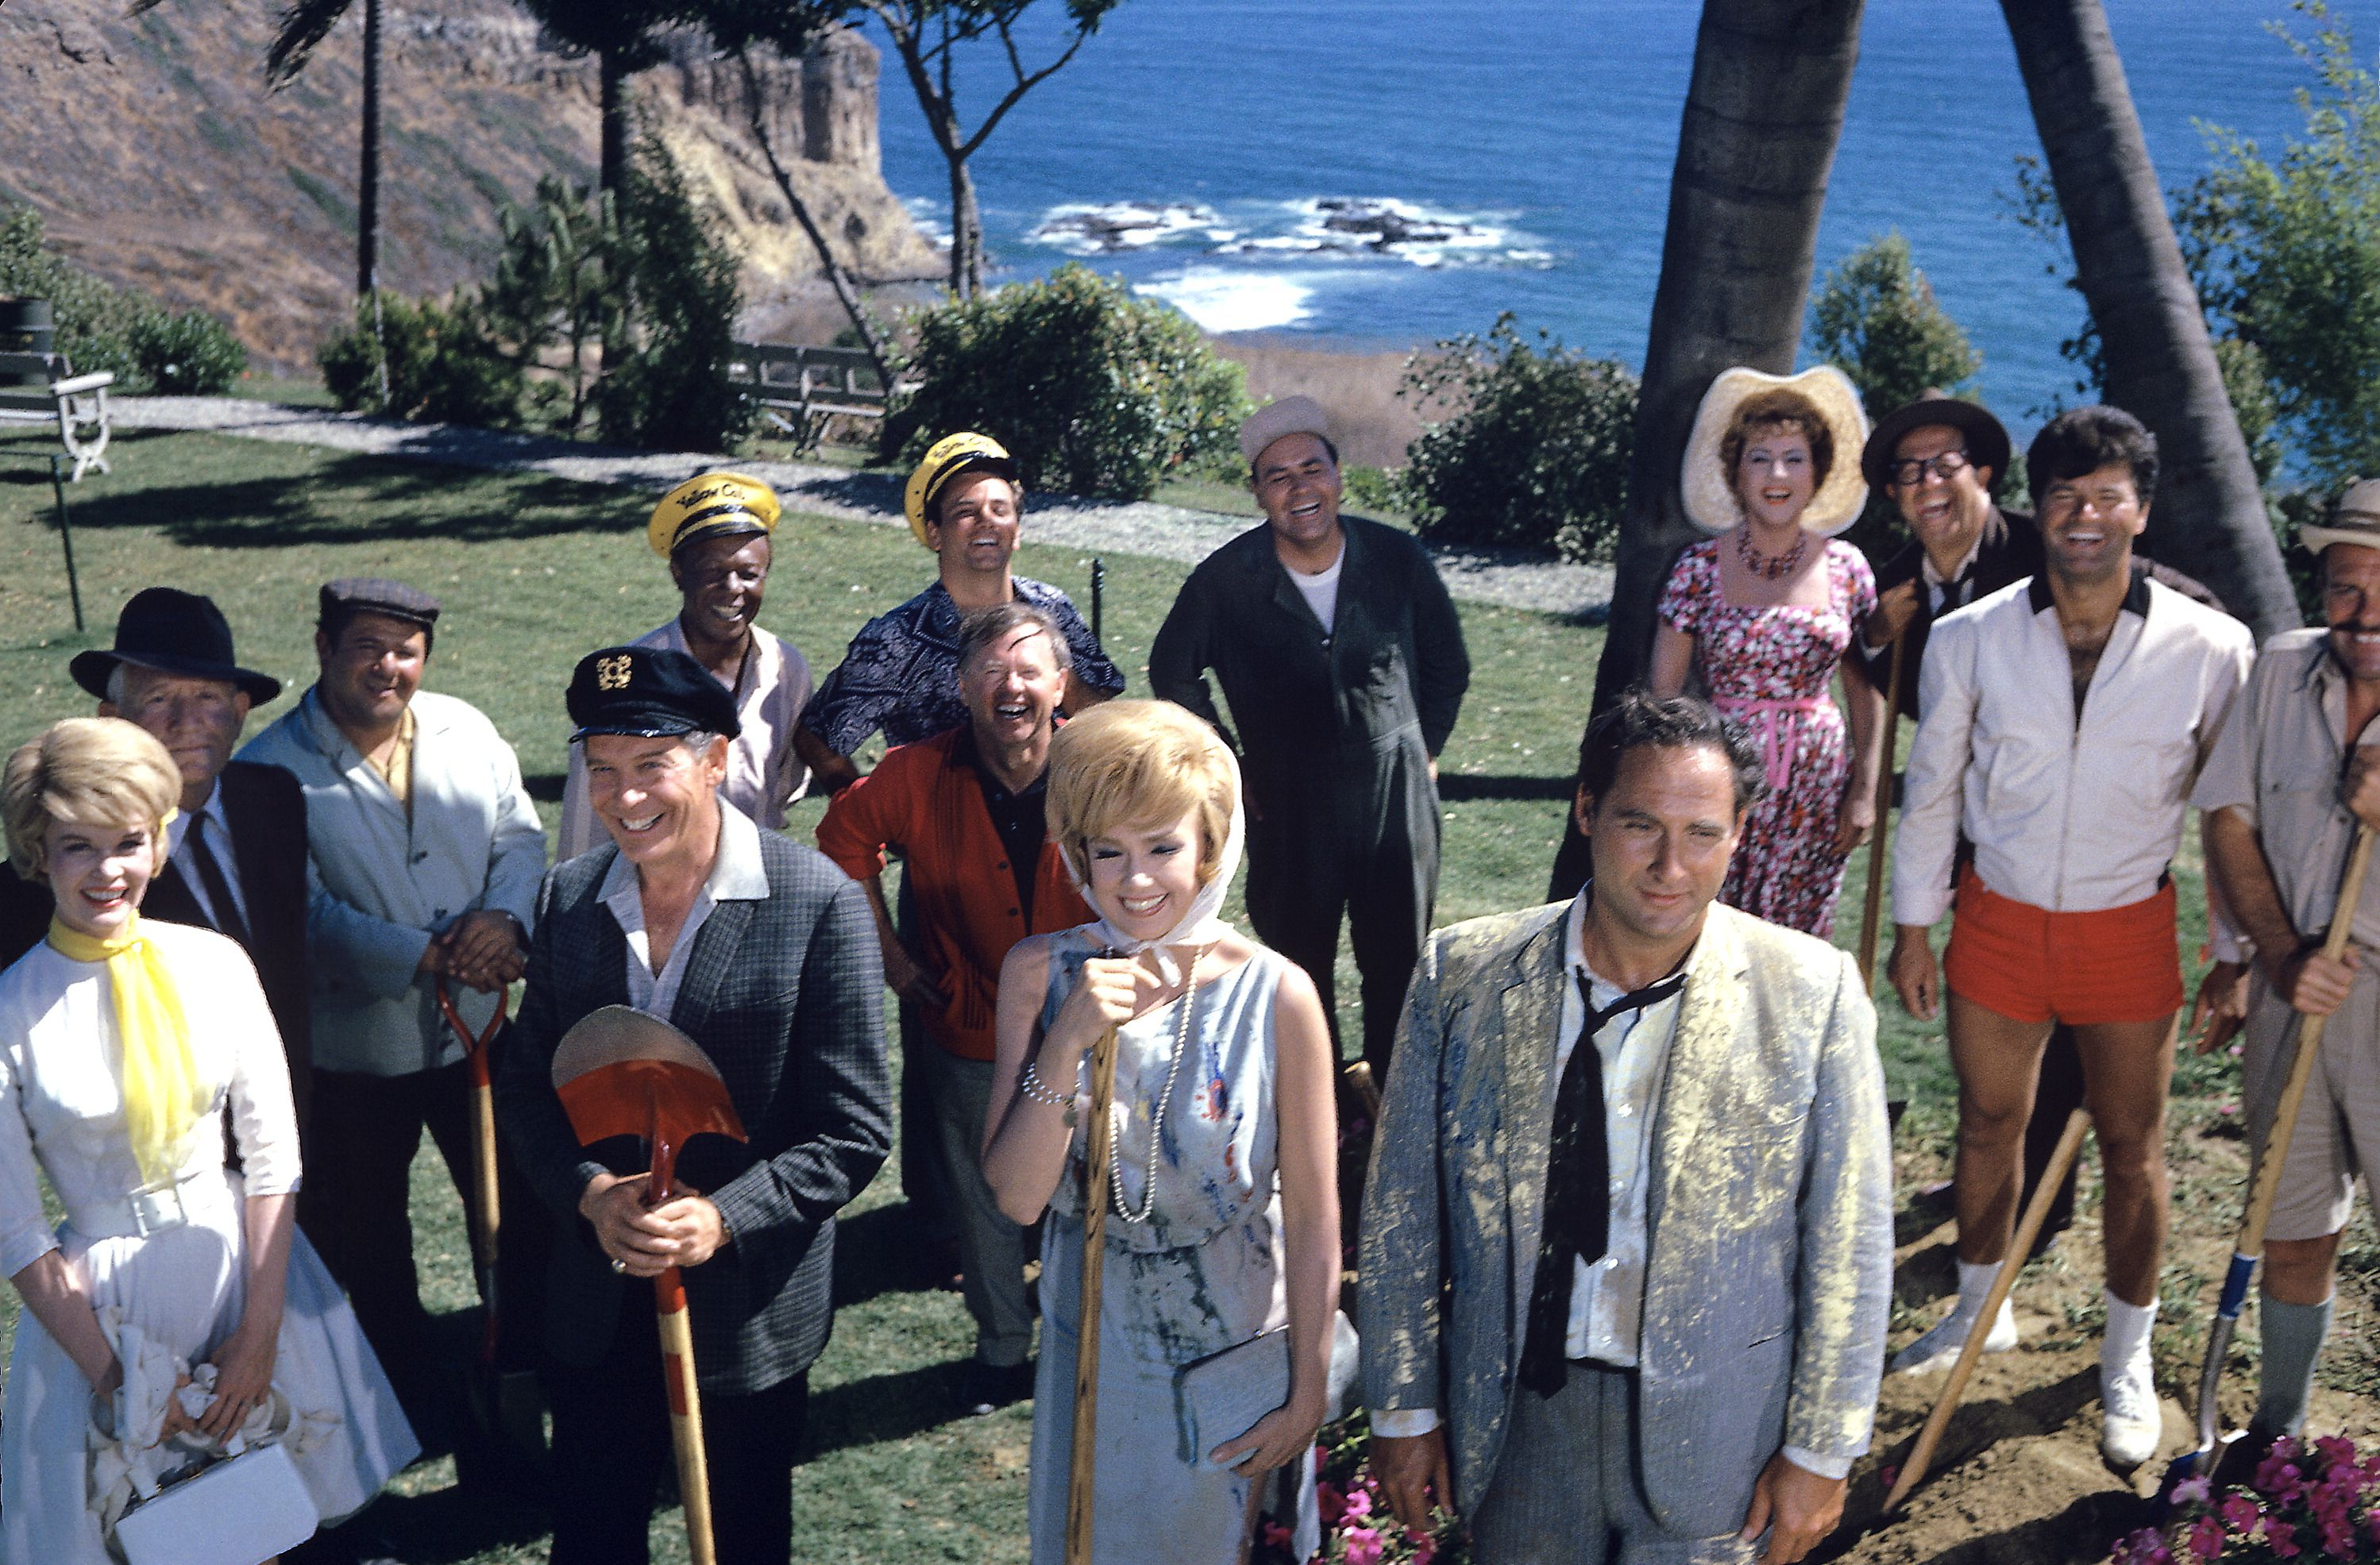 Cast Group Shot From The 1963 Movie It's A Mad, Mad, Mad